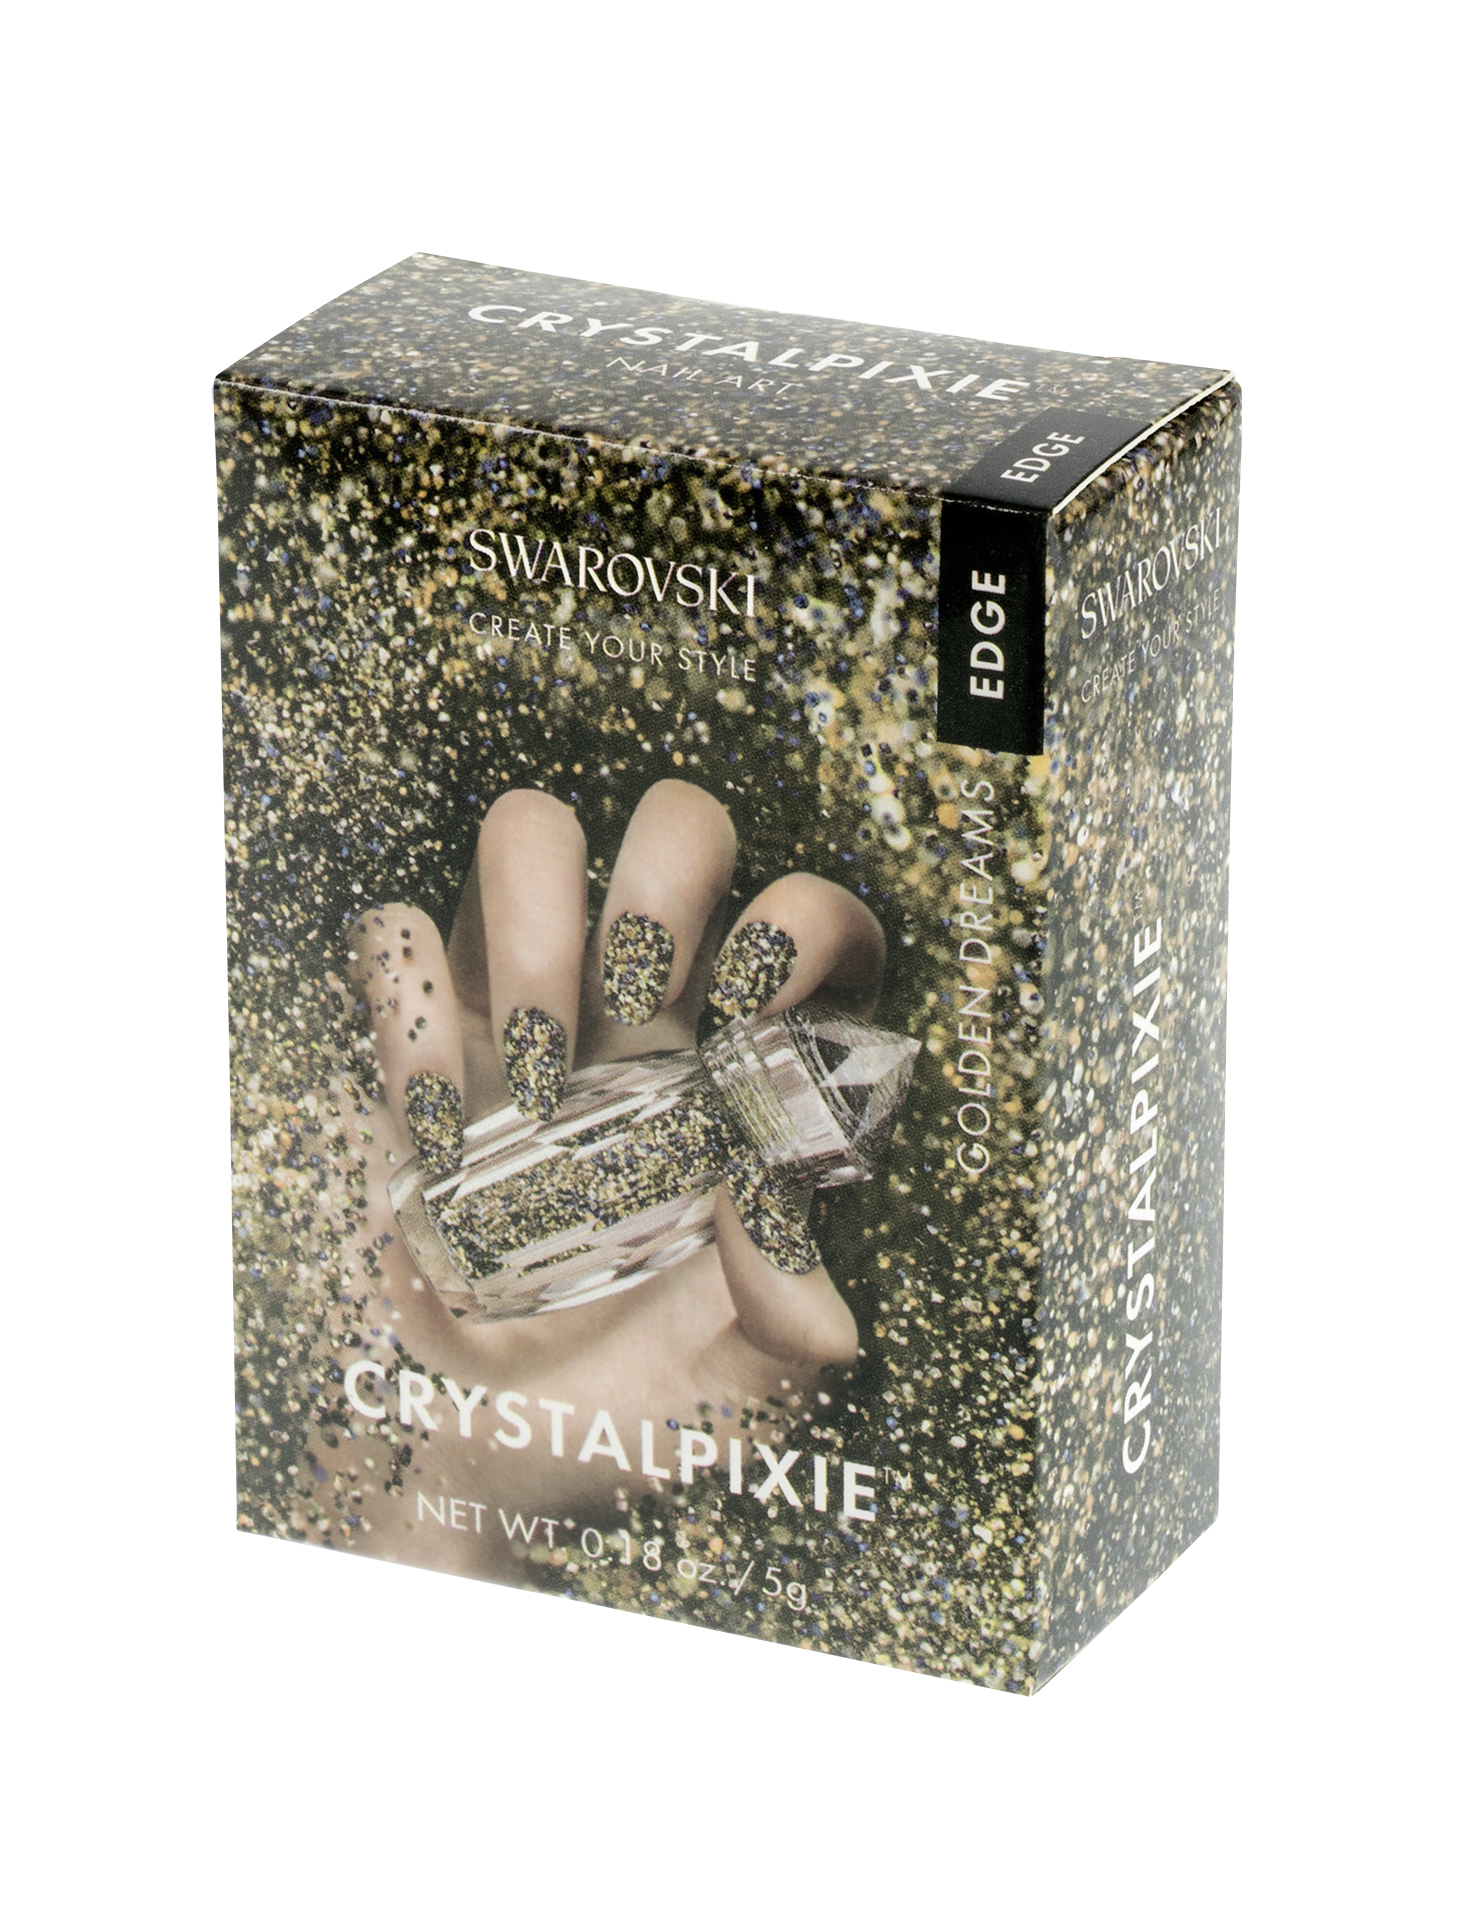 crystal-pixie-edge-diy-nageldesign-mit-swarovski-kristallen-nail-box-pixie-golden-dreams-1-st